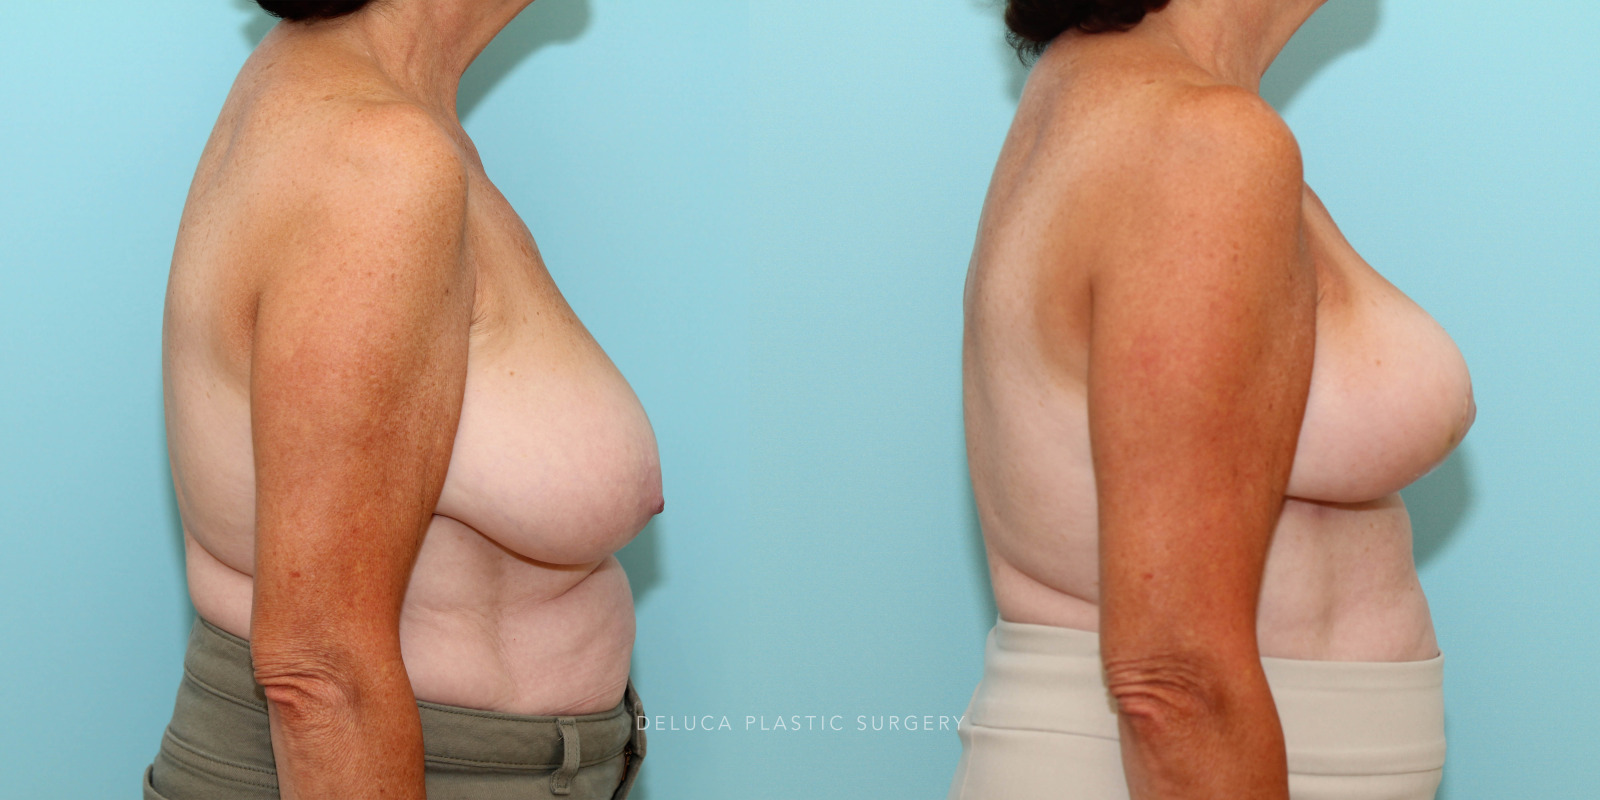 65 year old Superior Pedicle, Wise Pattern Breast Reduction